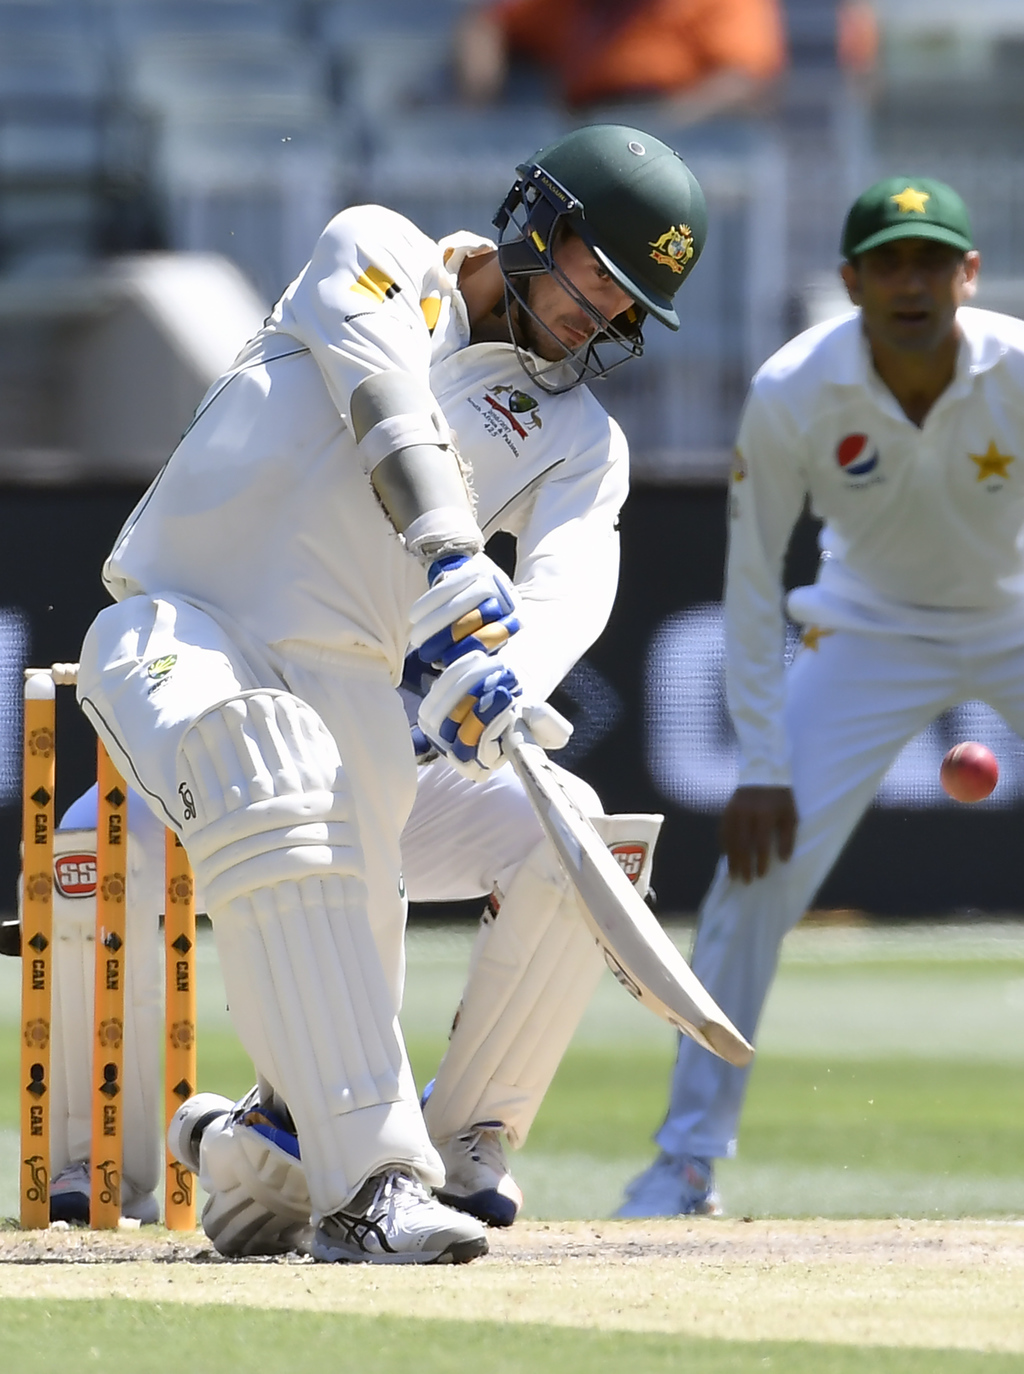 Australia's Mitchell Starc hits a six against the bowling of Pakistan's Azhar Ali on the fifth day of their second cricket test in Melb...